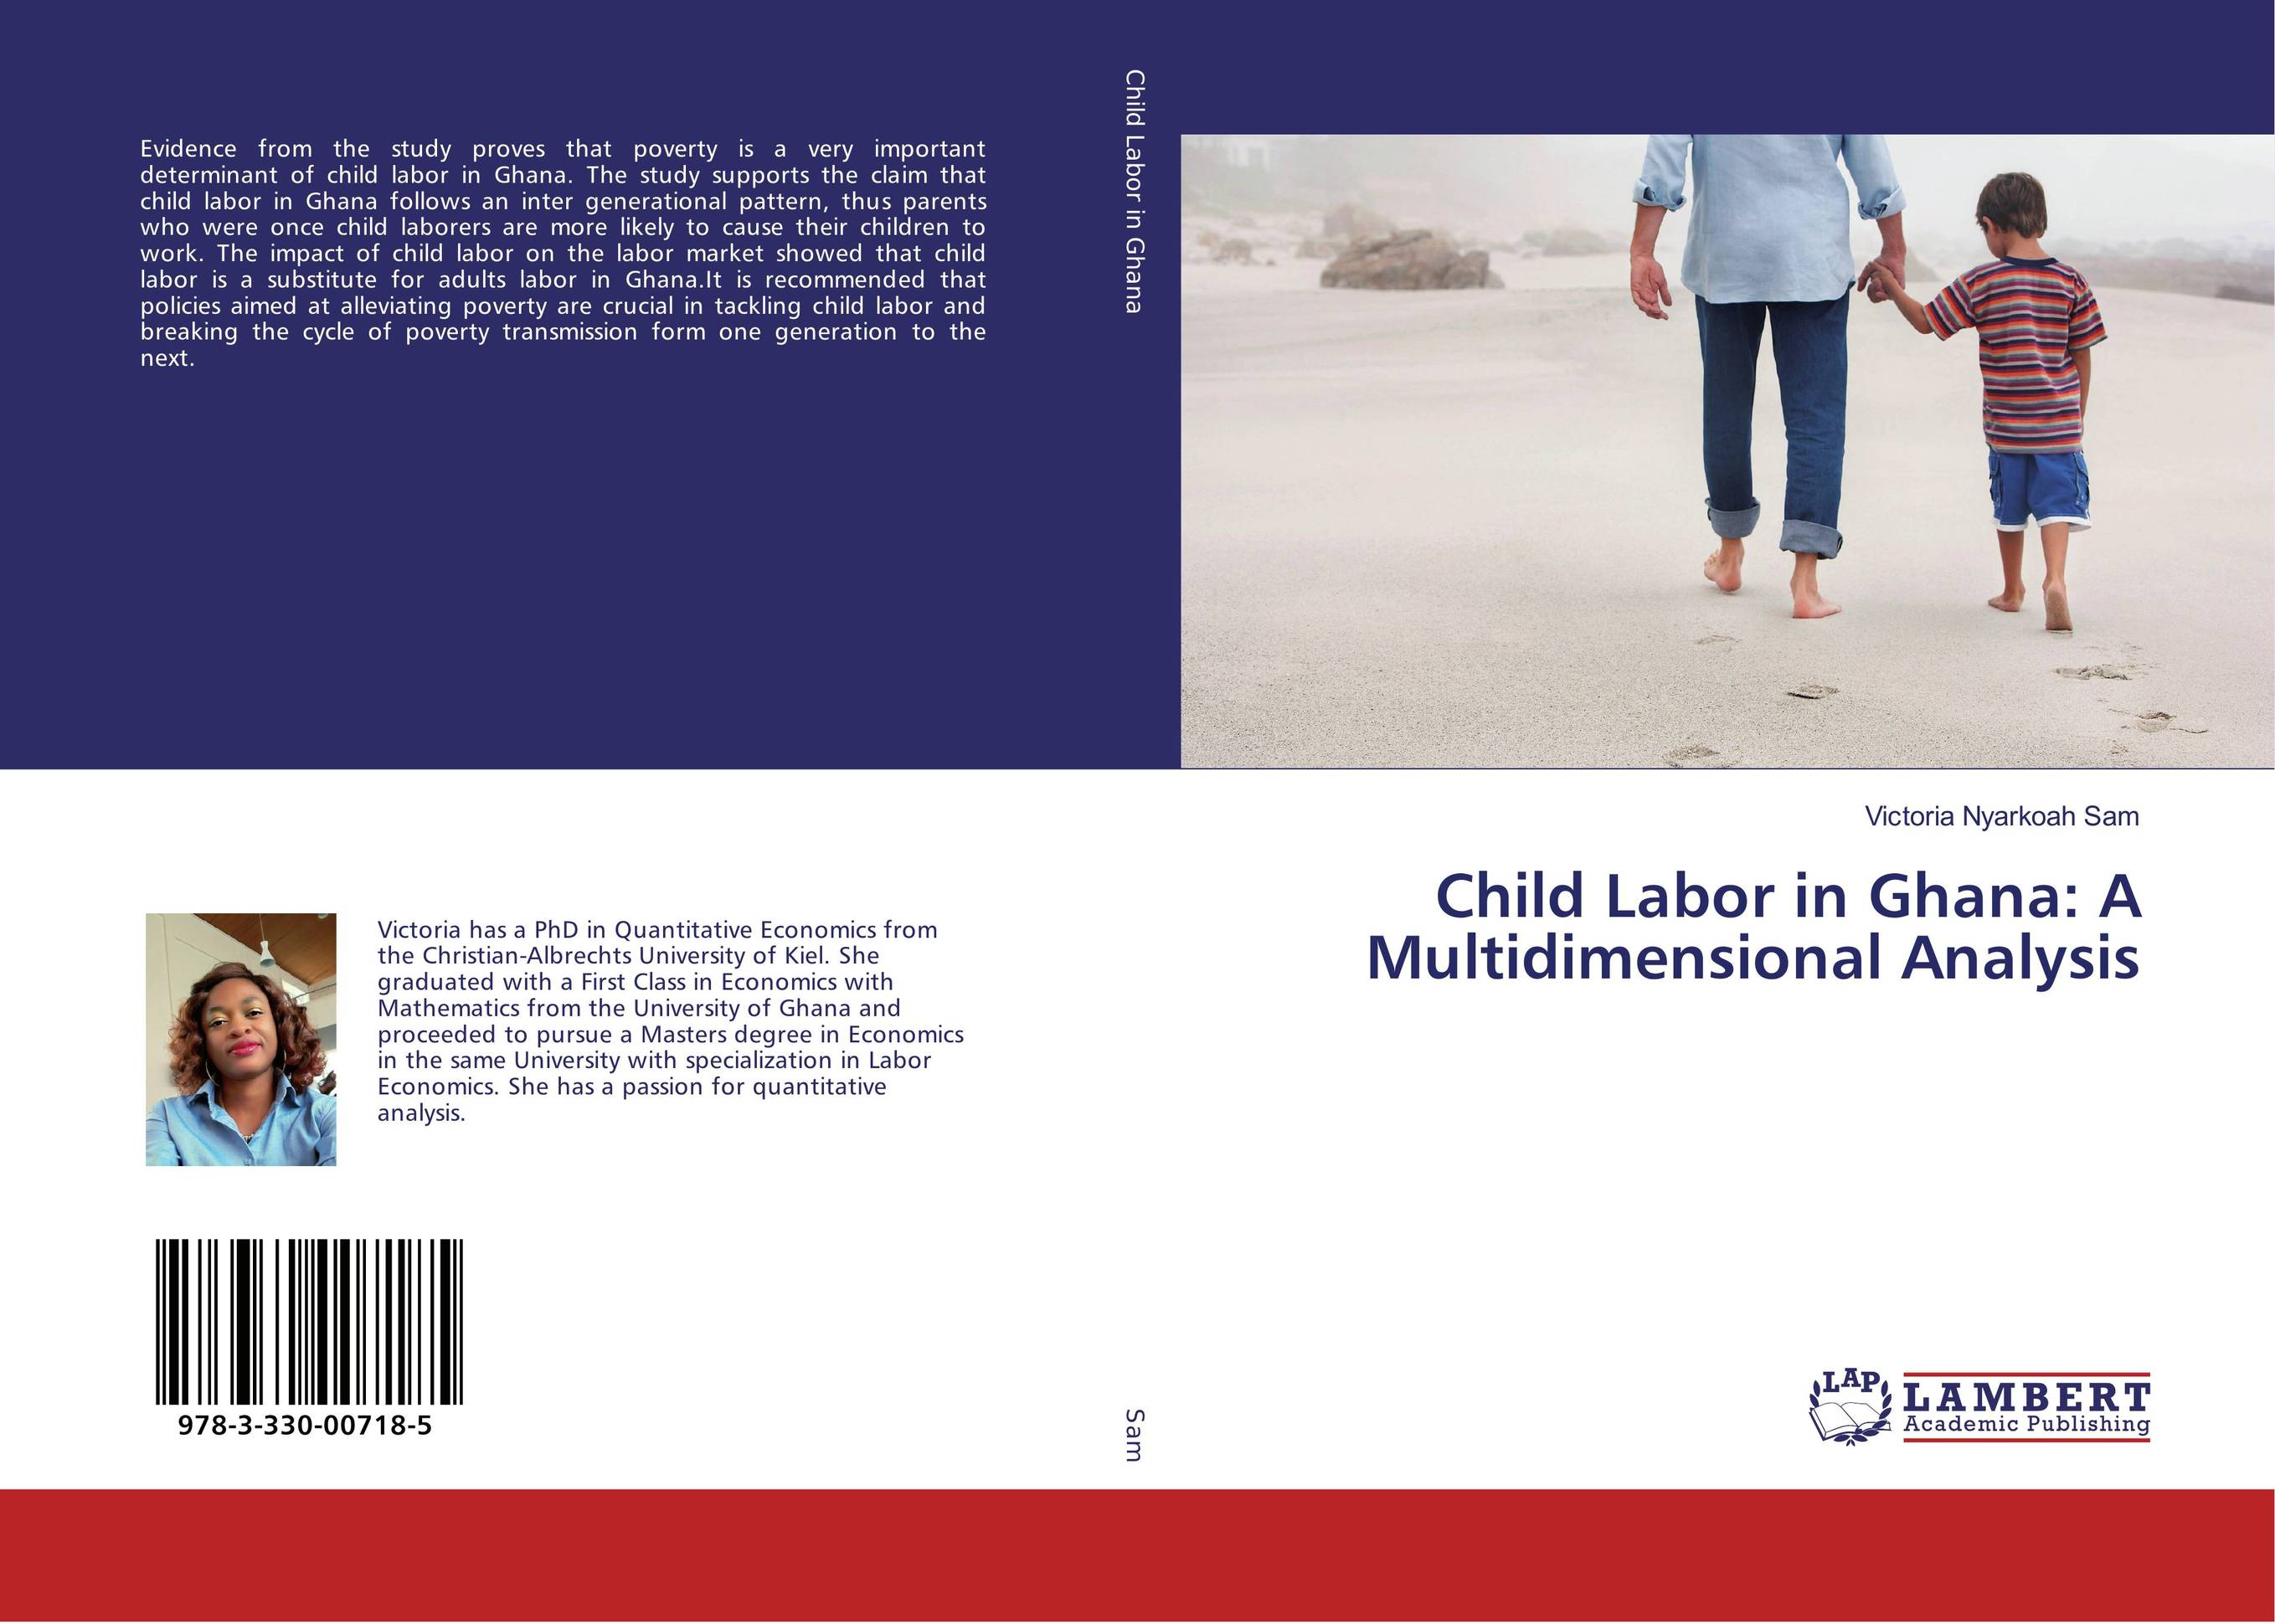 an analysis of child labor The purpose of the study is to provide an overall analysis of the situation of child labour in jordan and more specifically: to provide an analysis of the prevalence of working children (both.